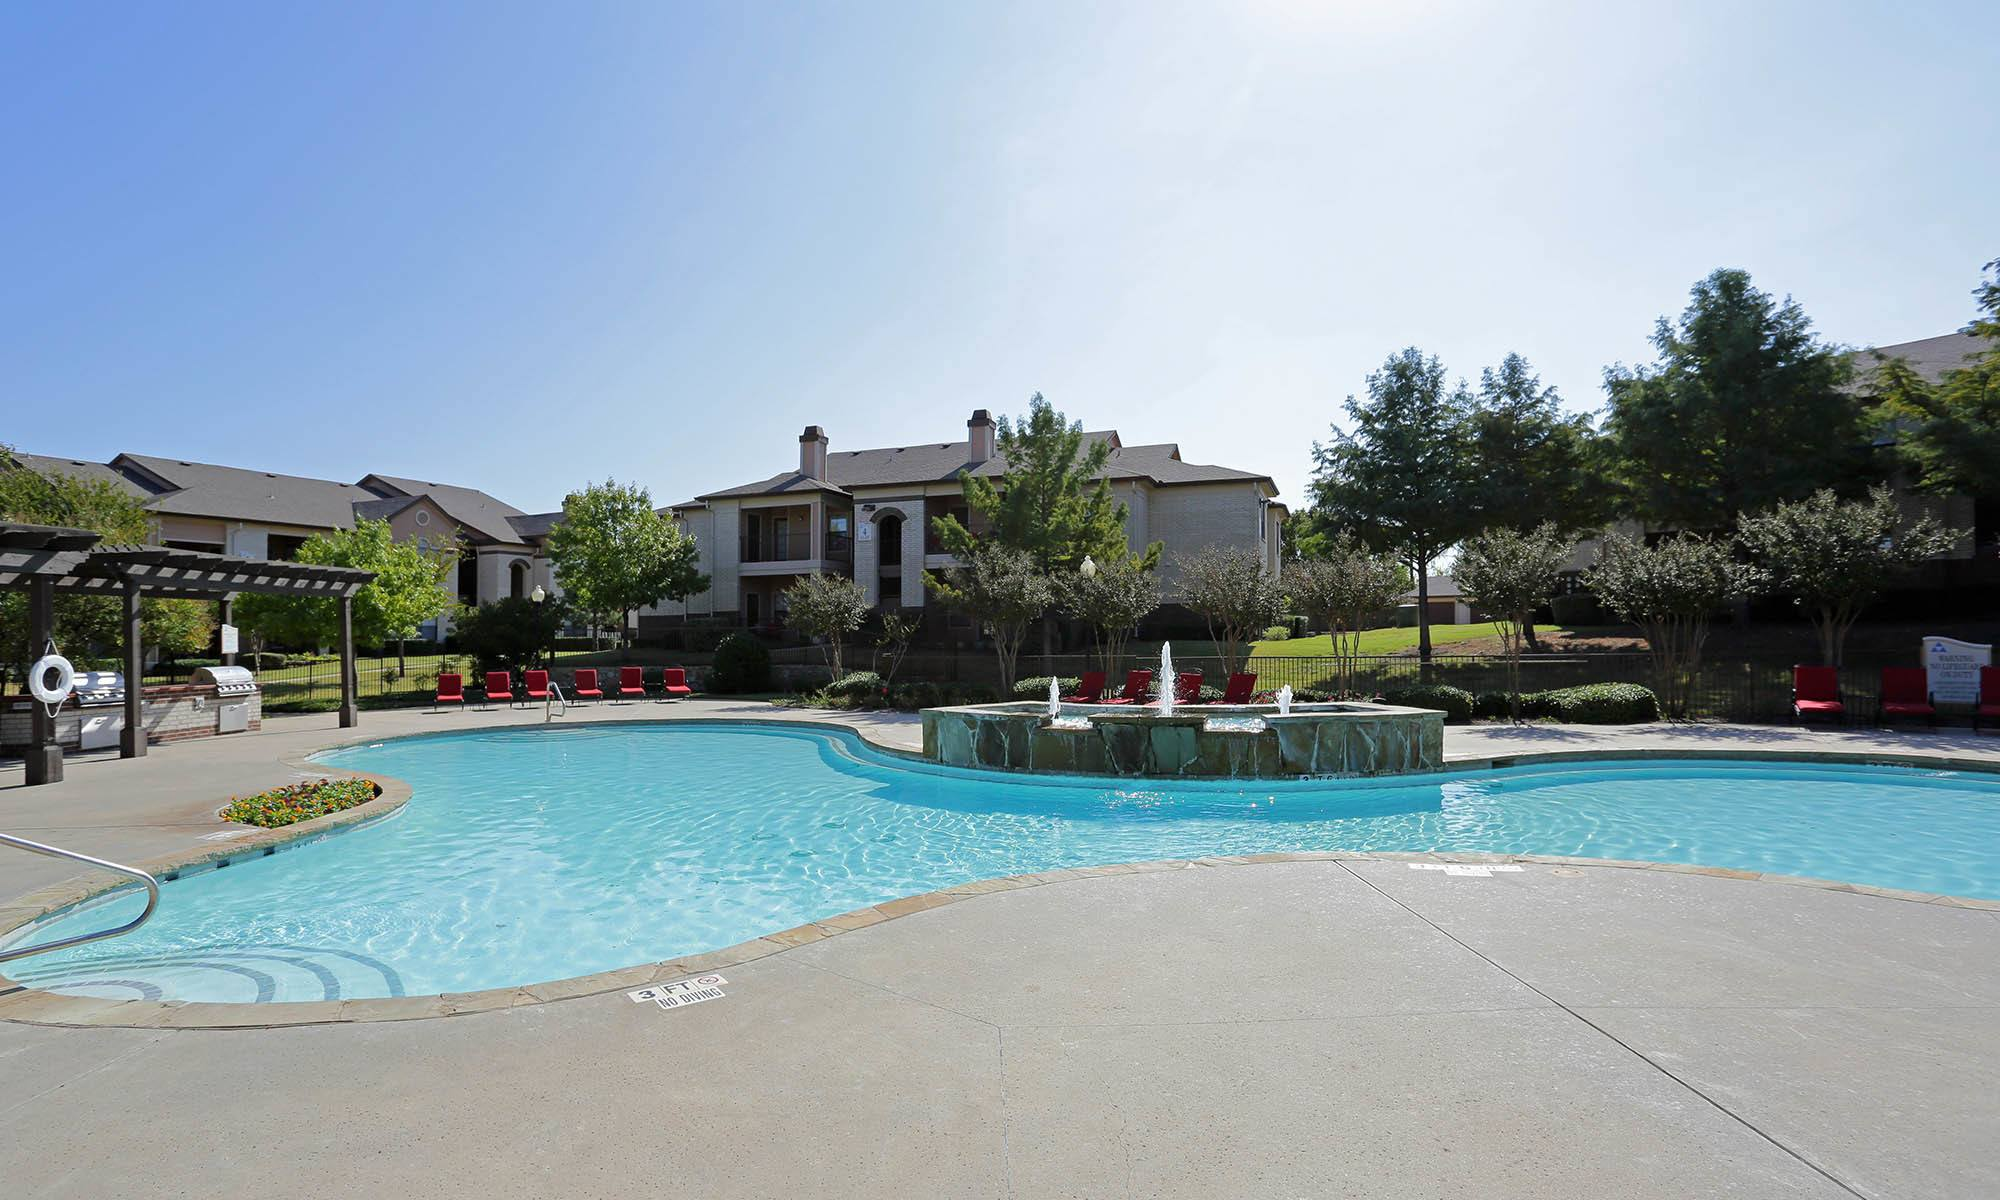 Apartments in Mansfield, TX